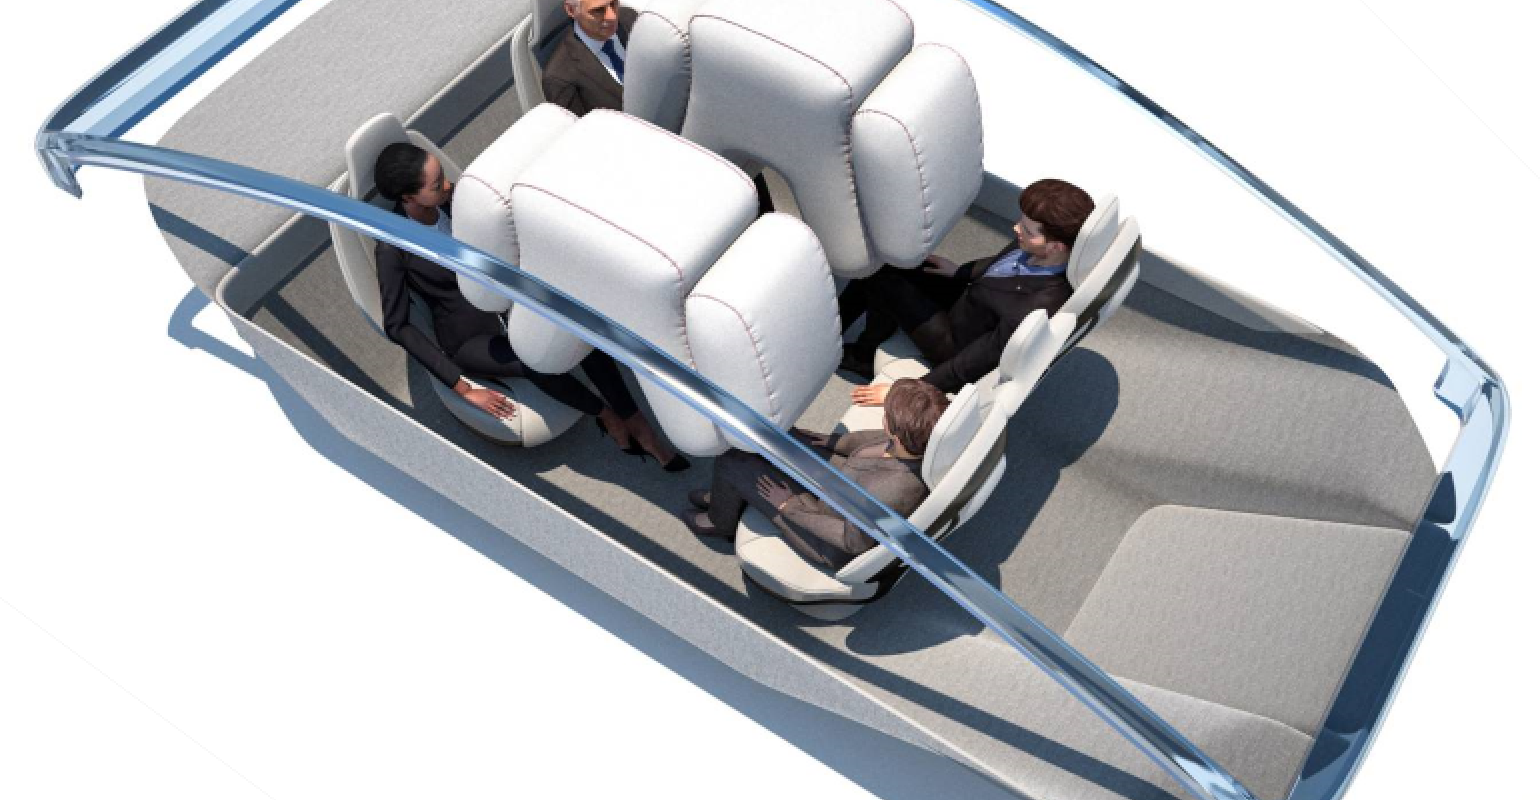 Autonomous Cars will Need Airbags and Seatbelts for